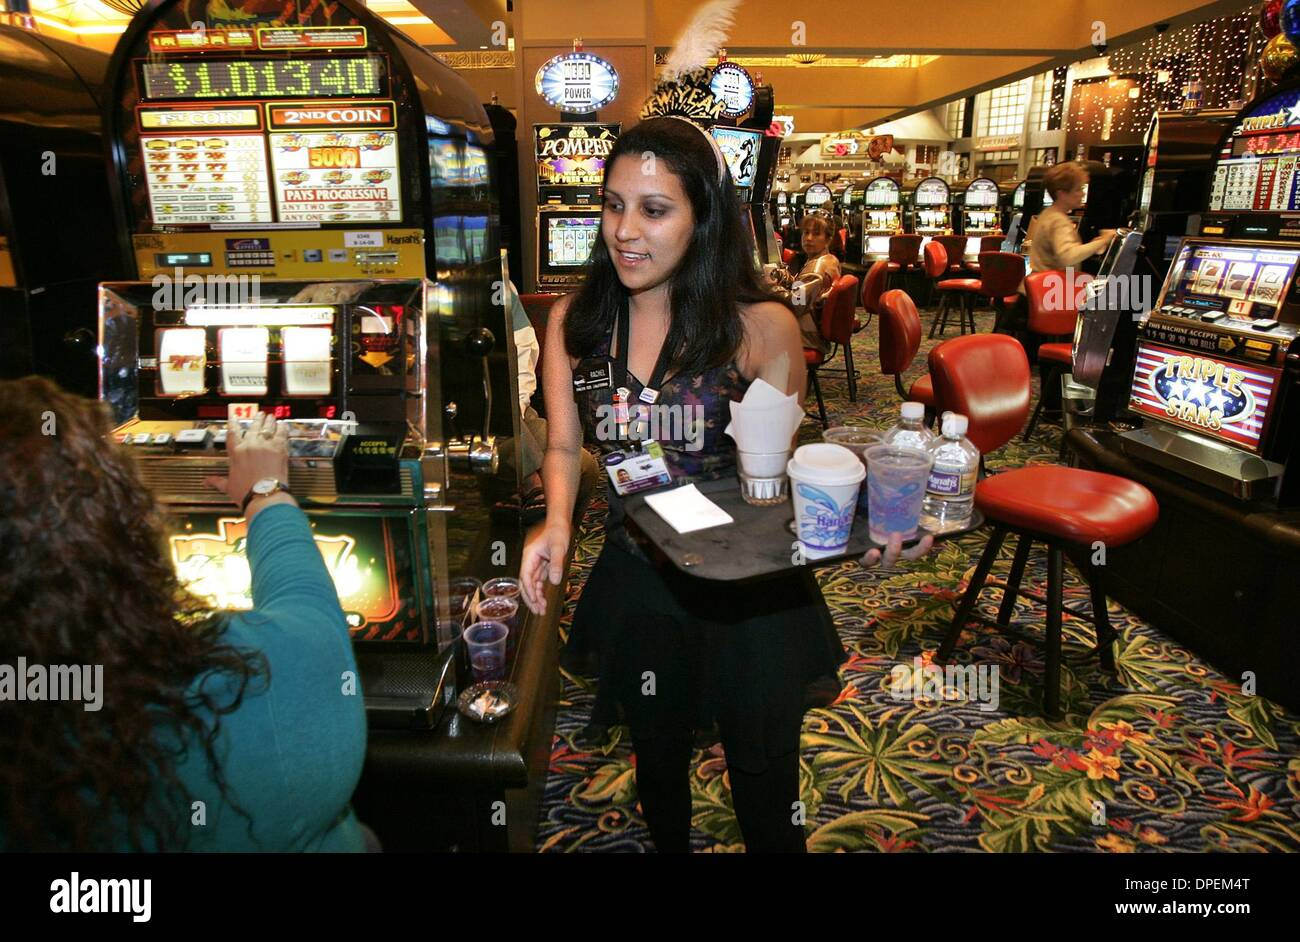 cocktail waitressing in casino